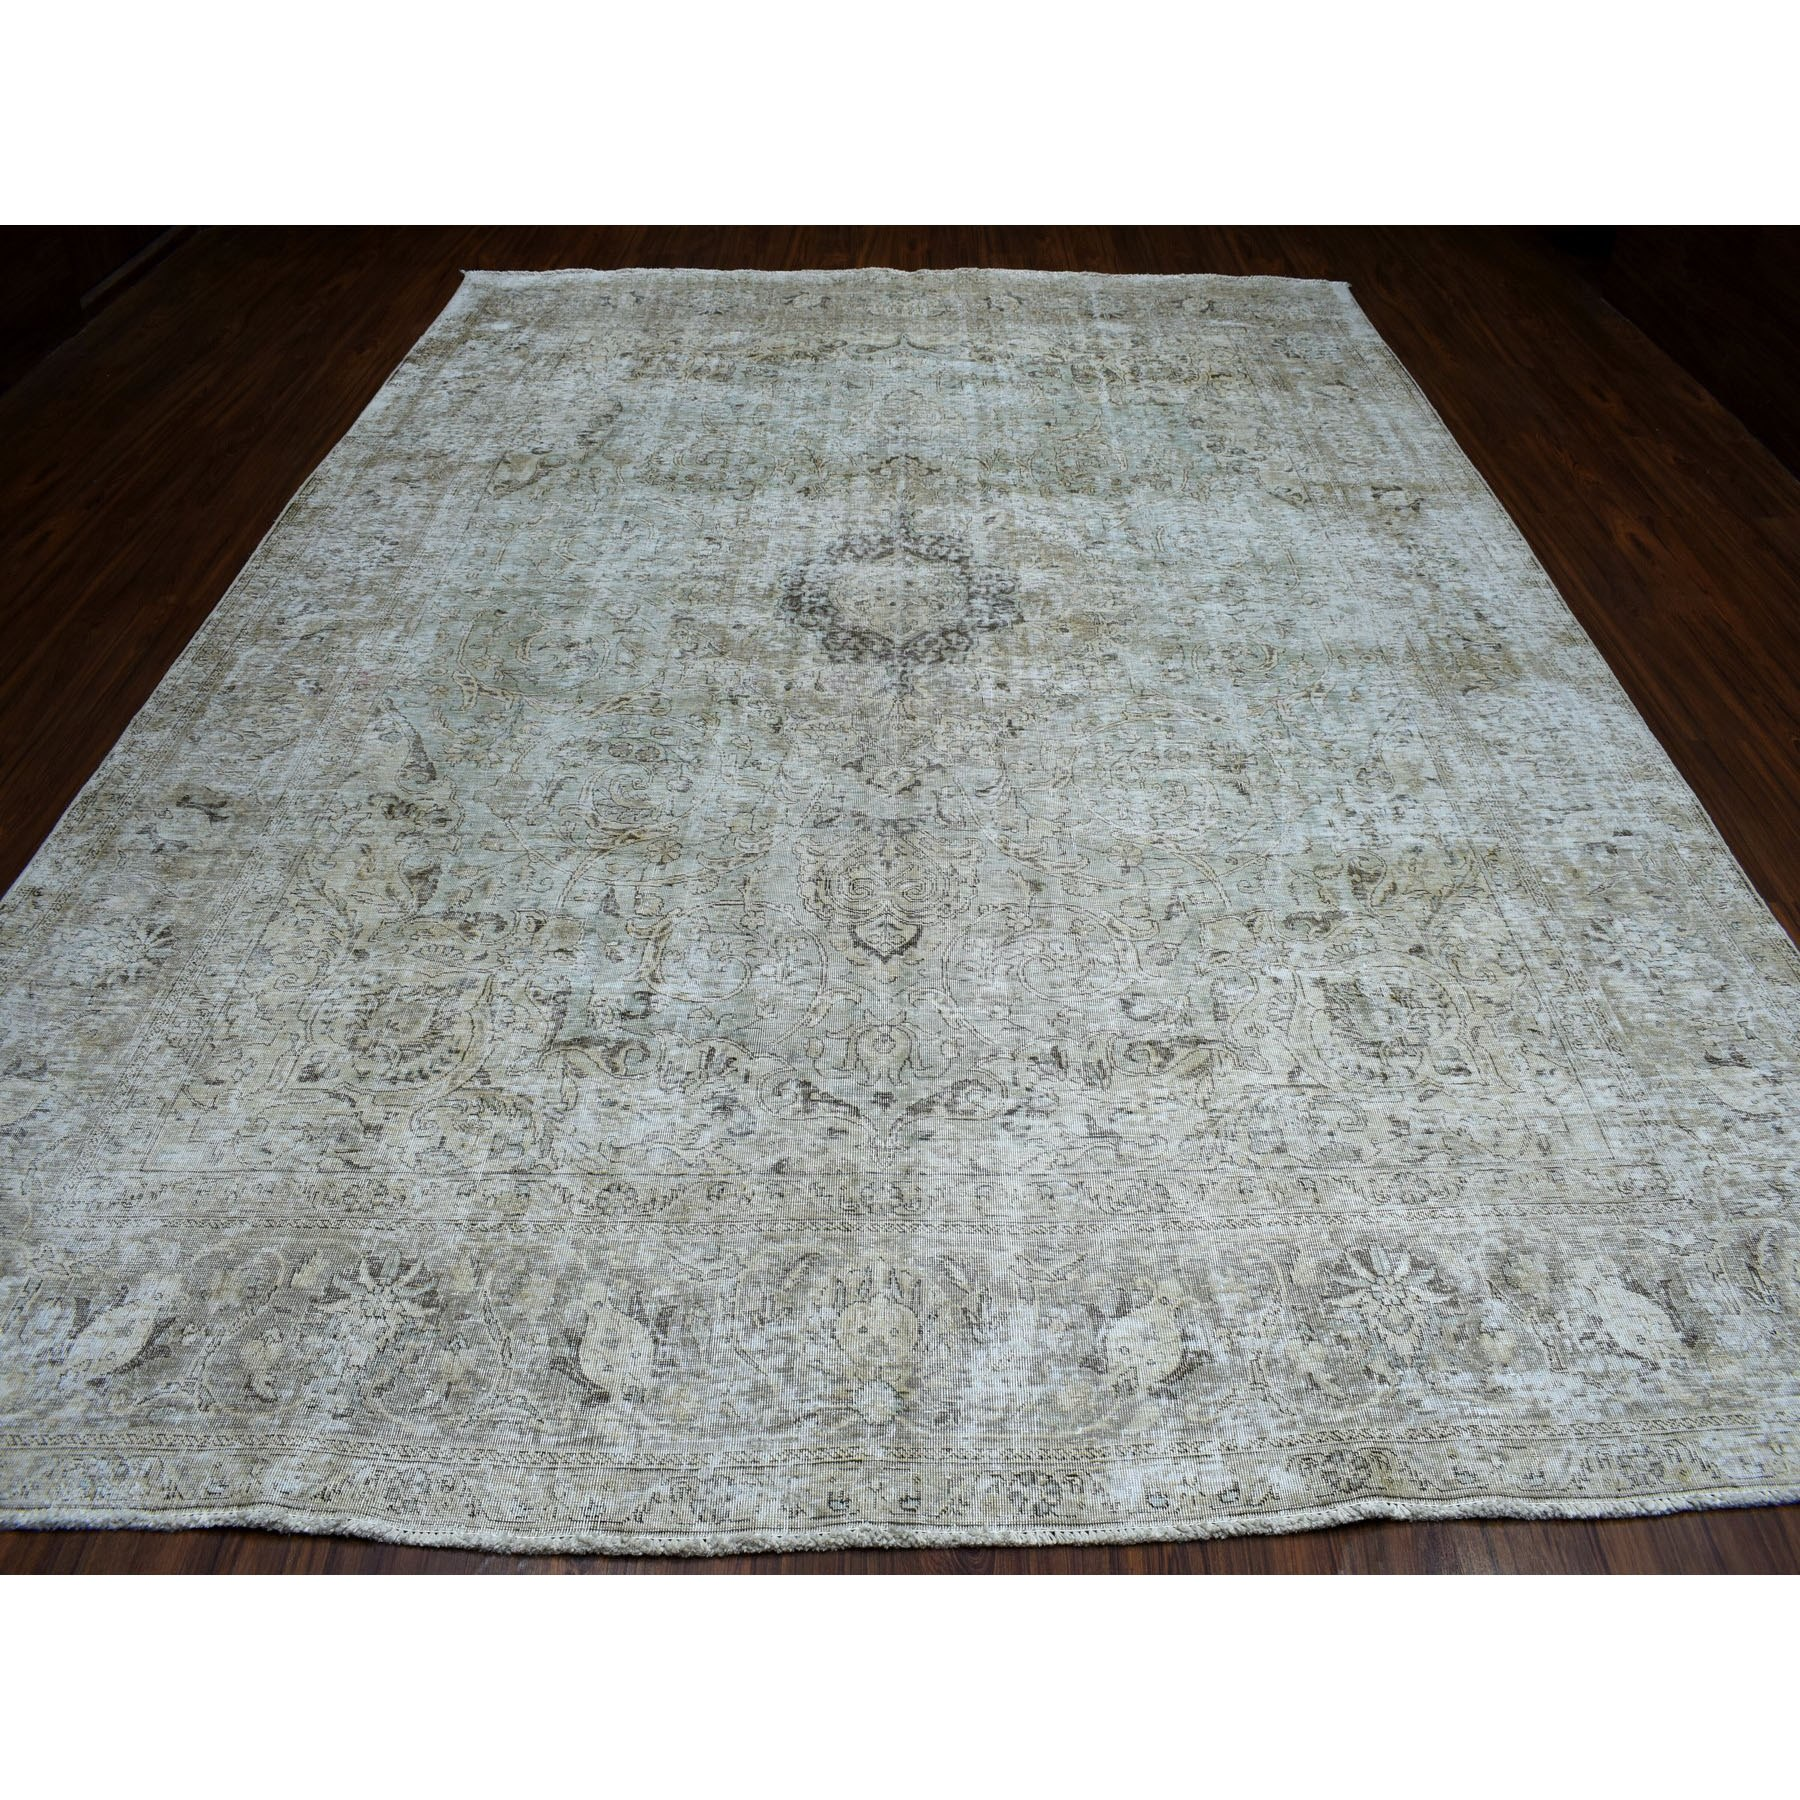 "9'8""x13' Gray Vintage Persian Tabriz Worn Pile Hand Knotted Oriental Rug"